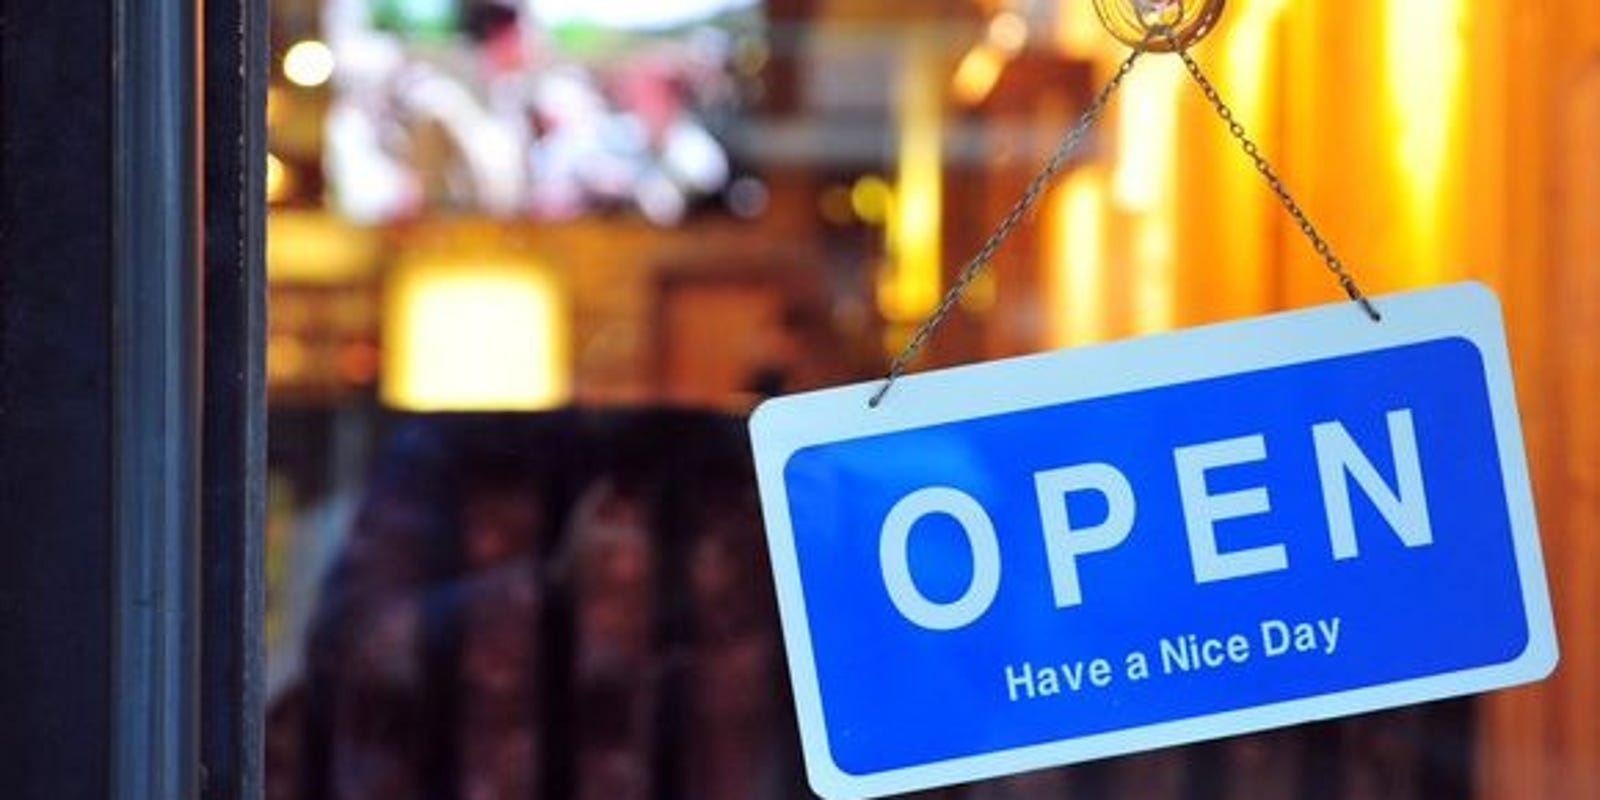 Be safe, be smart when reopening your small business after COVID-19